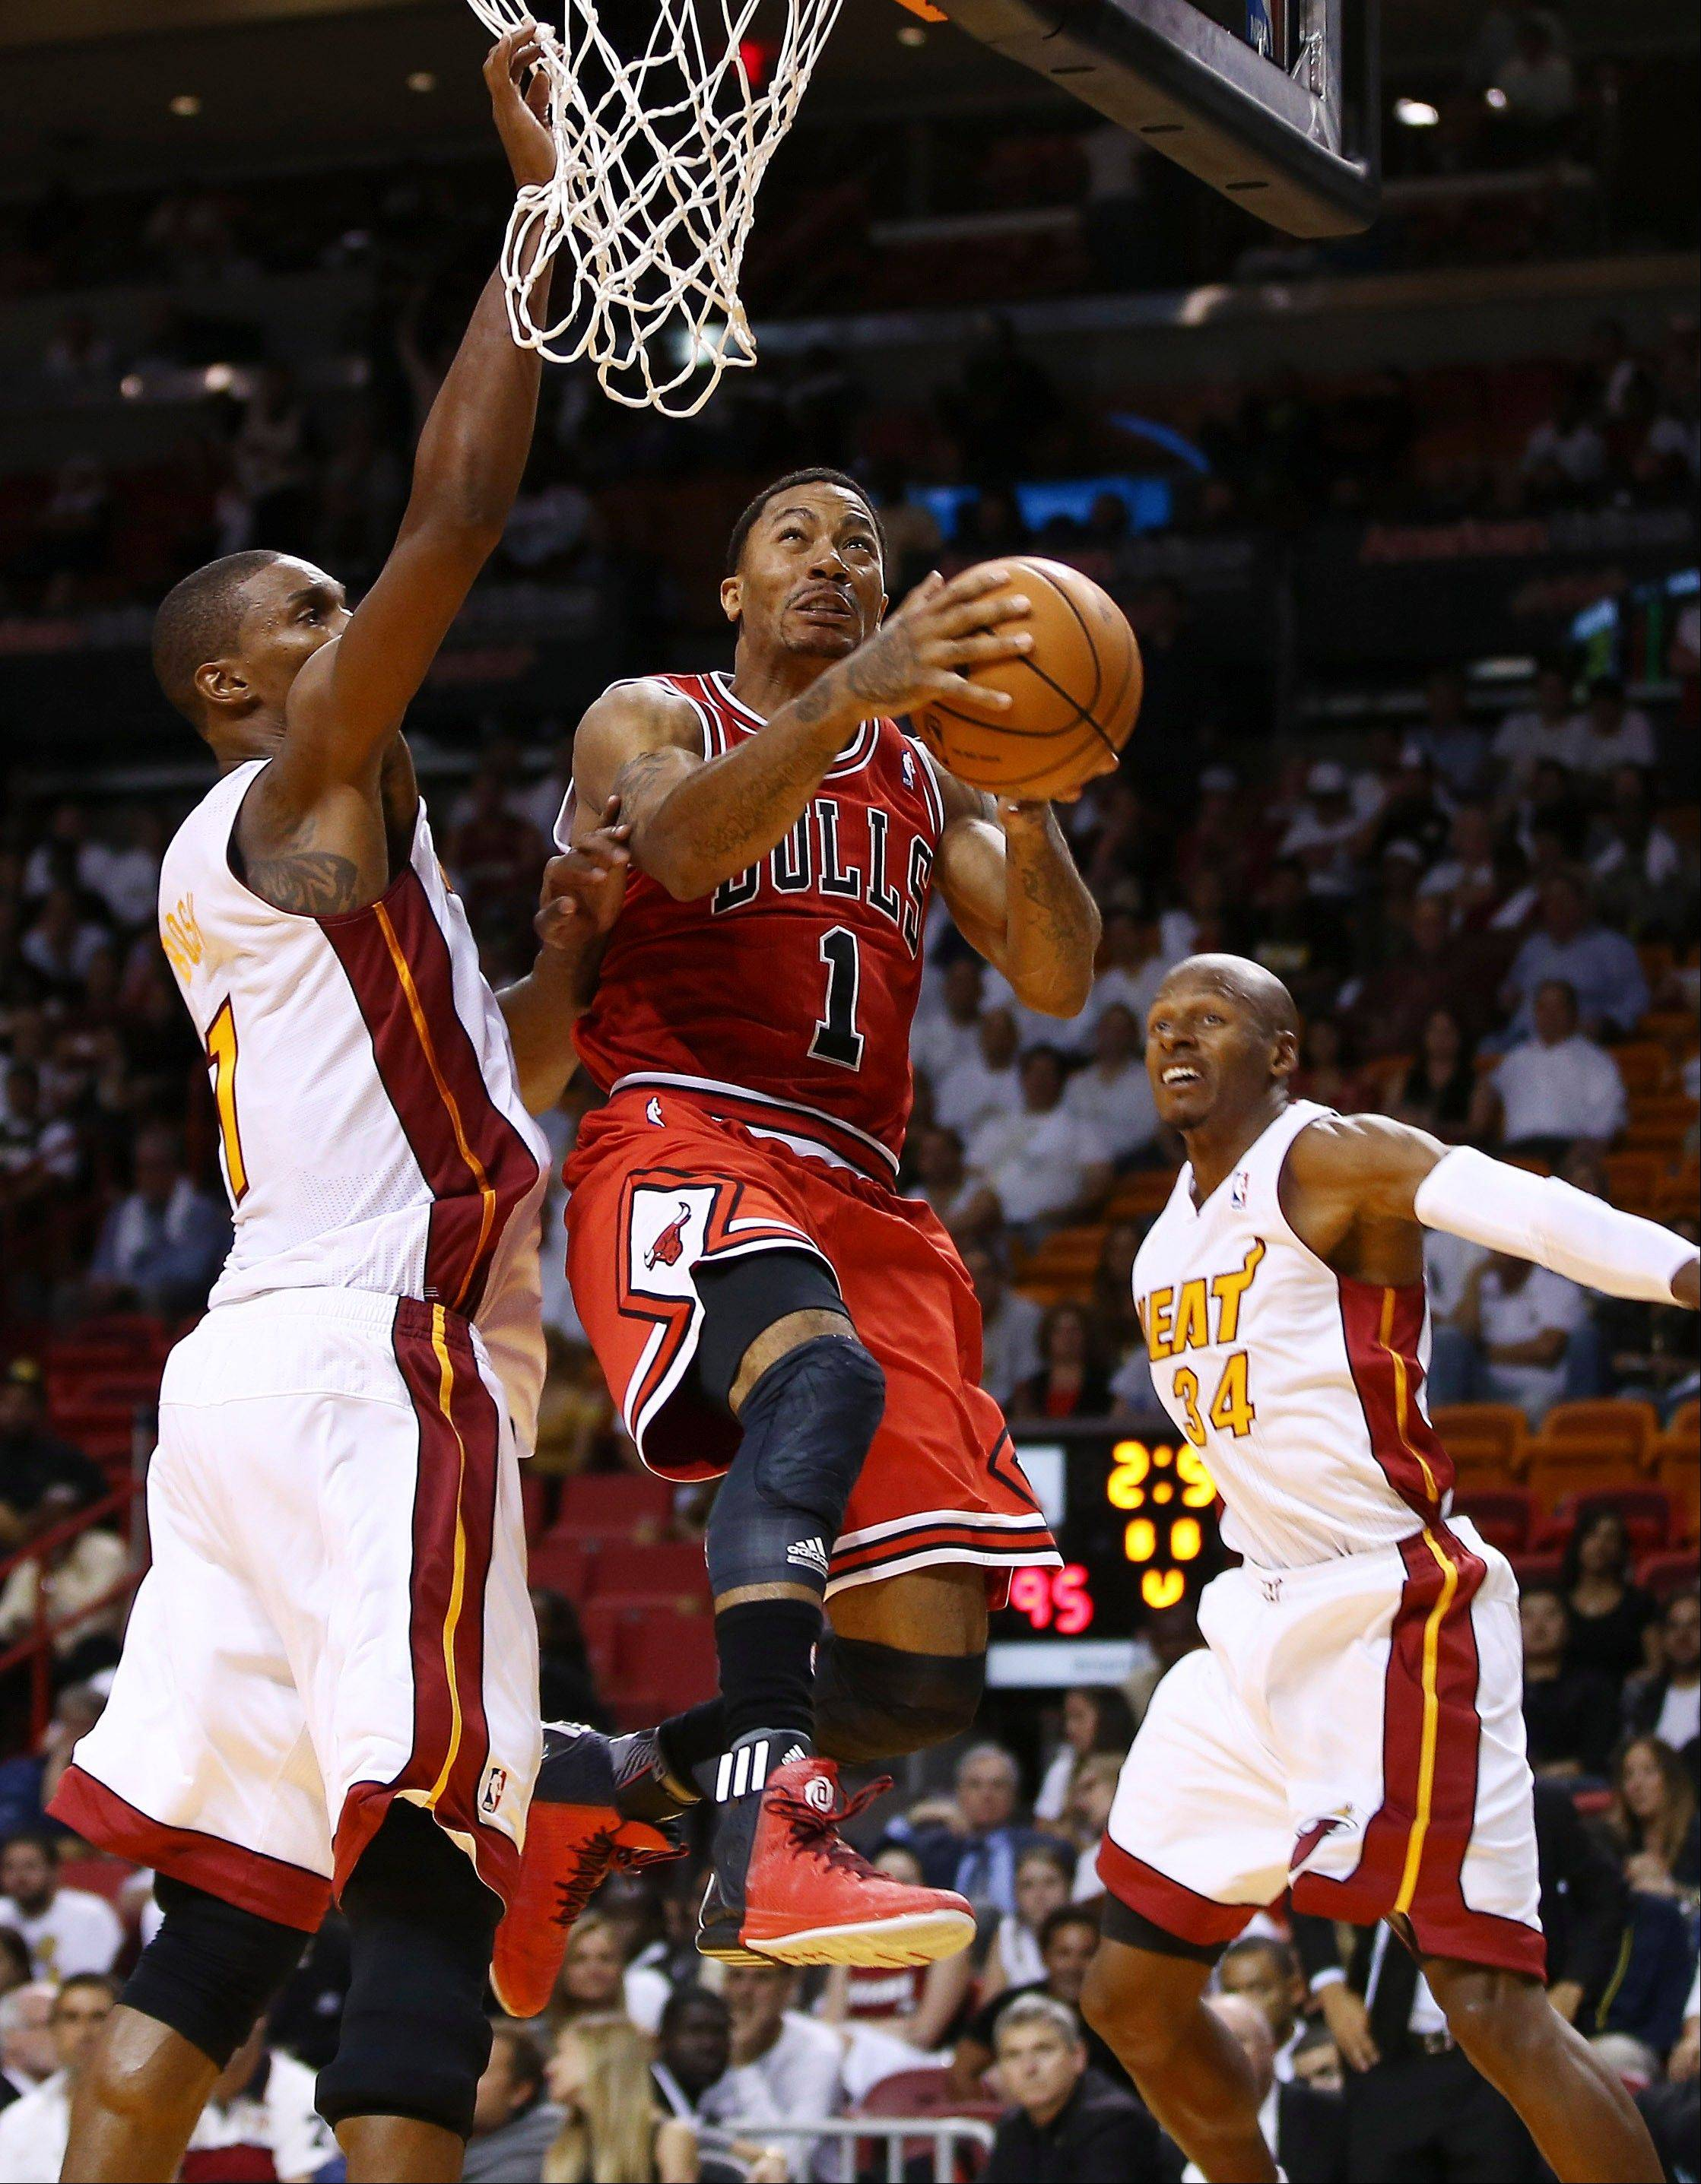 The Bulls' Derrick Rose goes to the basket between the Heat's Chris Bosh (1) and Ray Allen (34) during the second half Tuesday night in Miami. The Heat won 107-95.